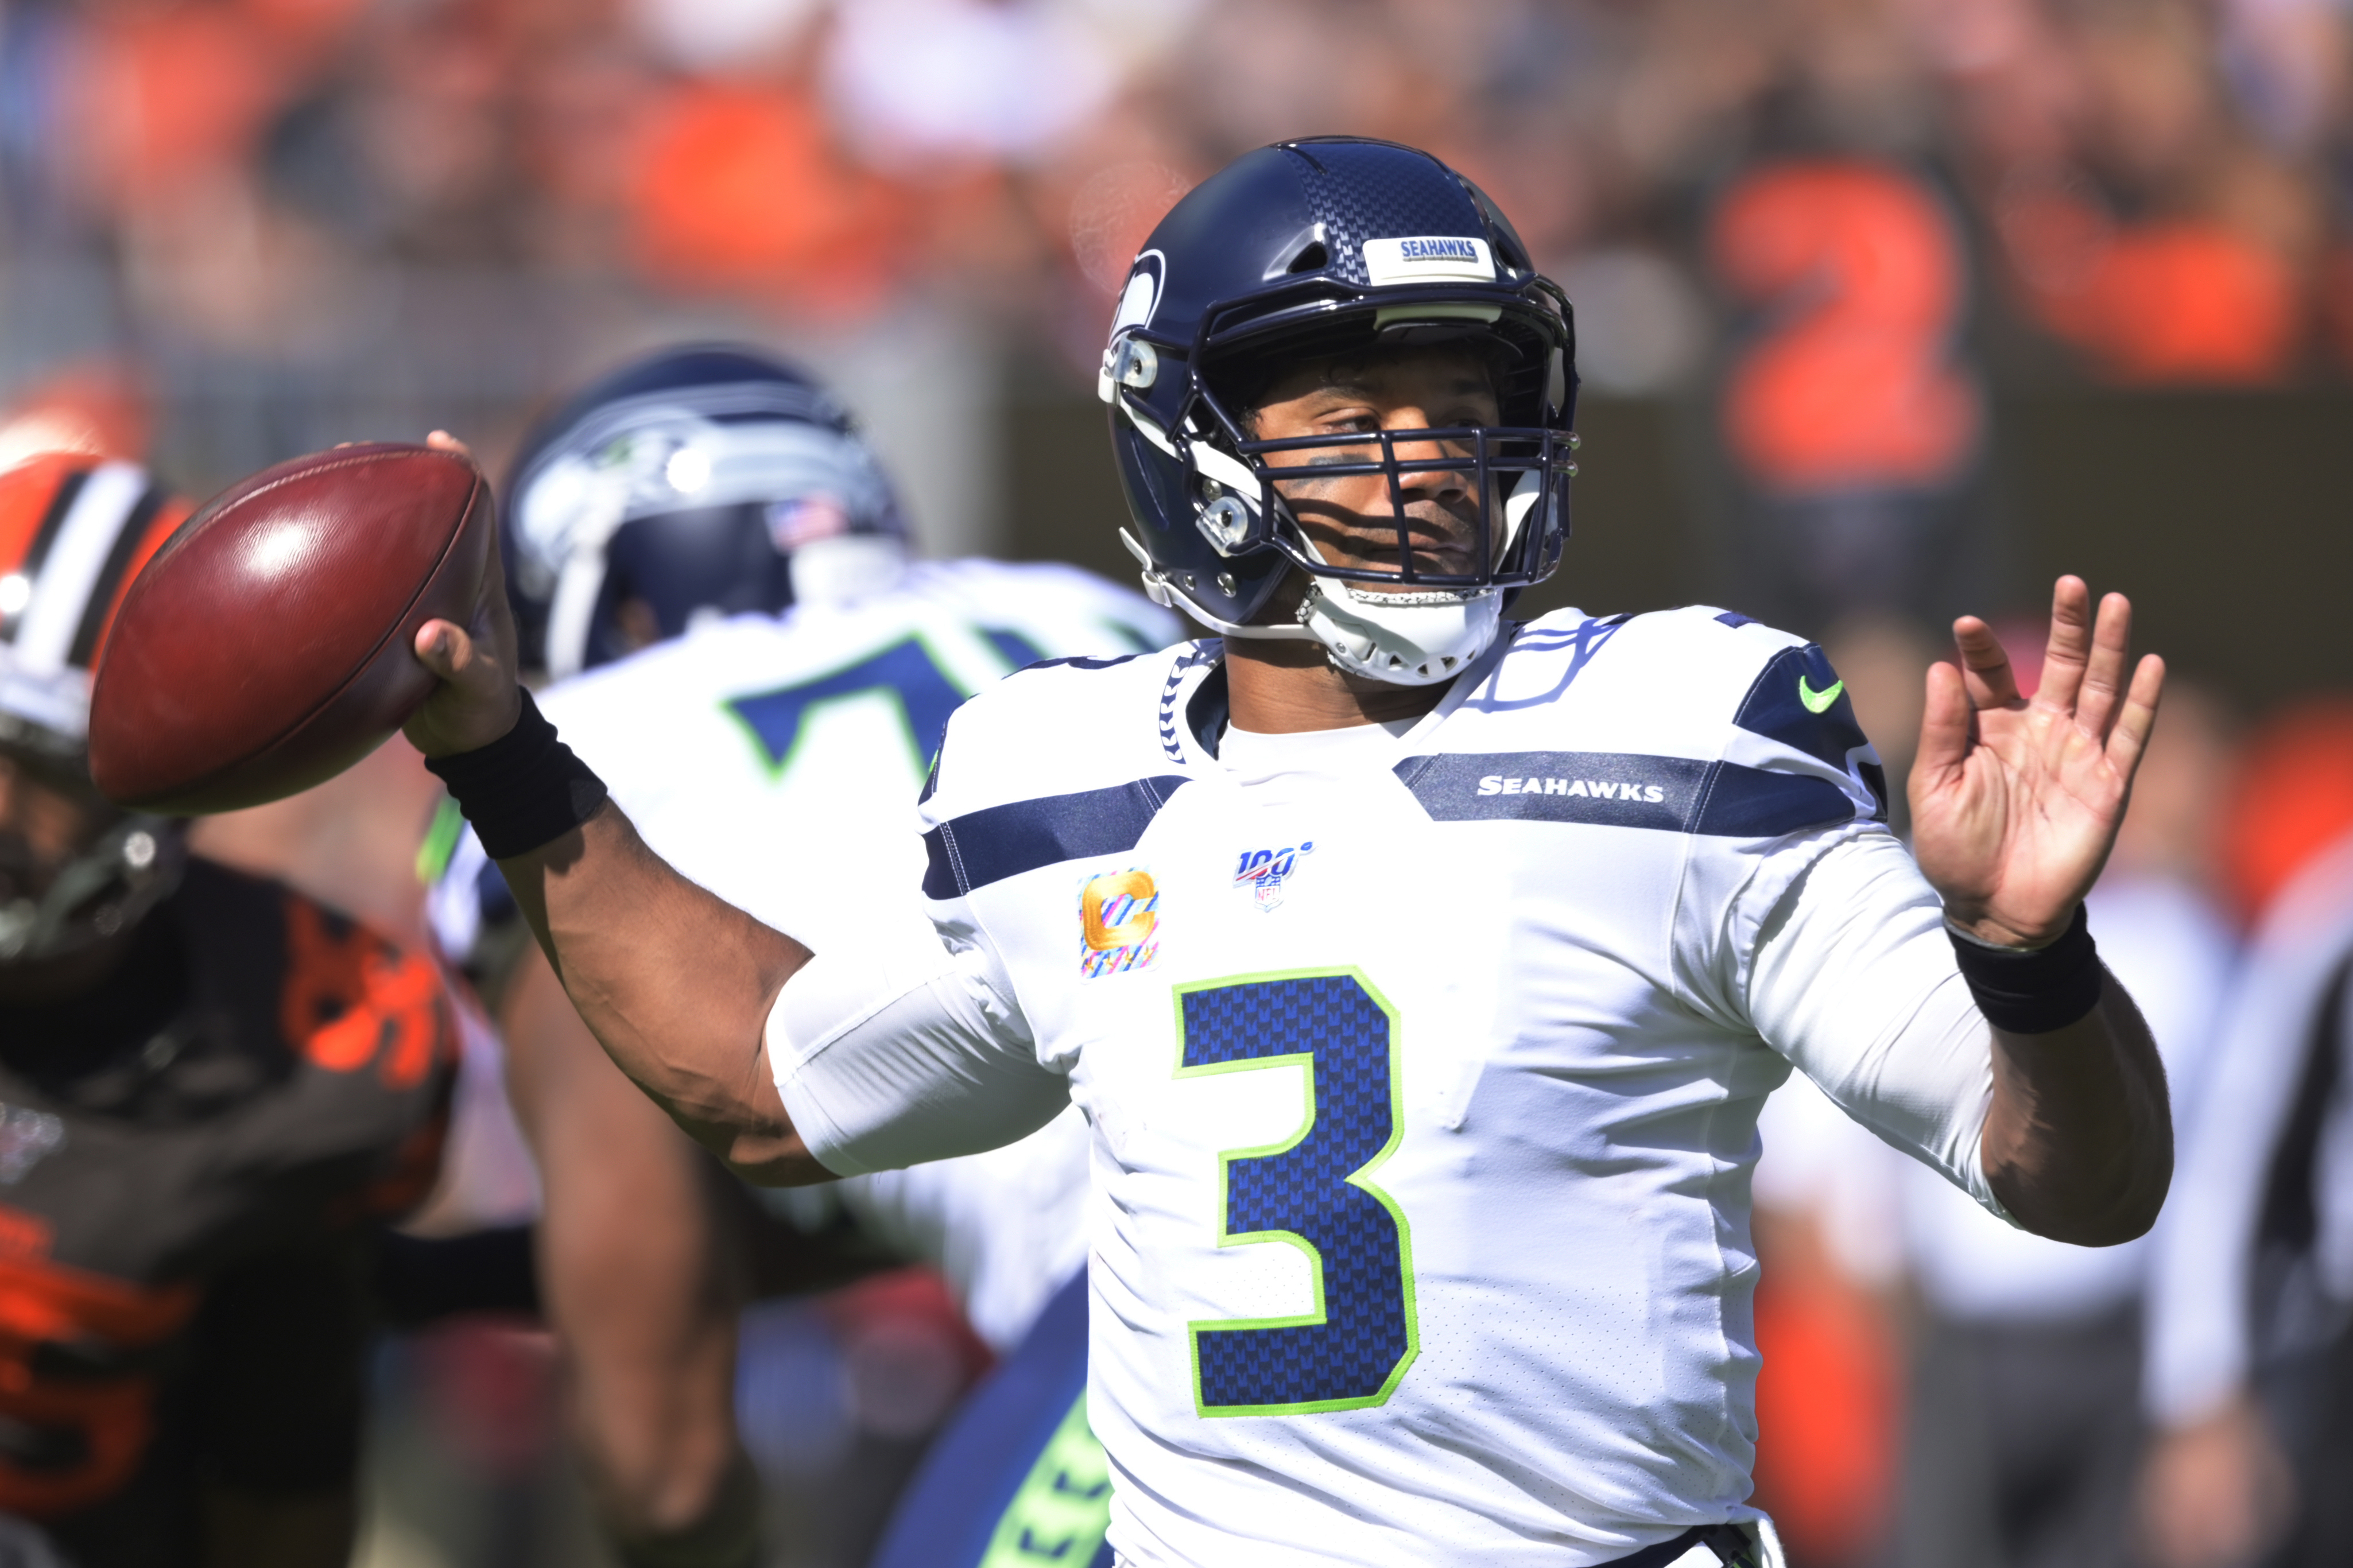 Seahawks' Russell Wilson's case for MVP, Ravens' Lamar Jackson and Falcons' Matt Ryan making history: 10 key stats for NFL Week 7